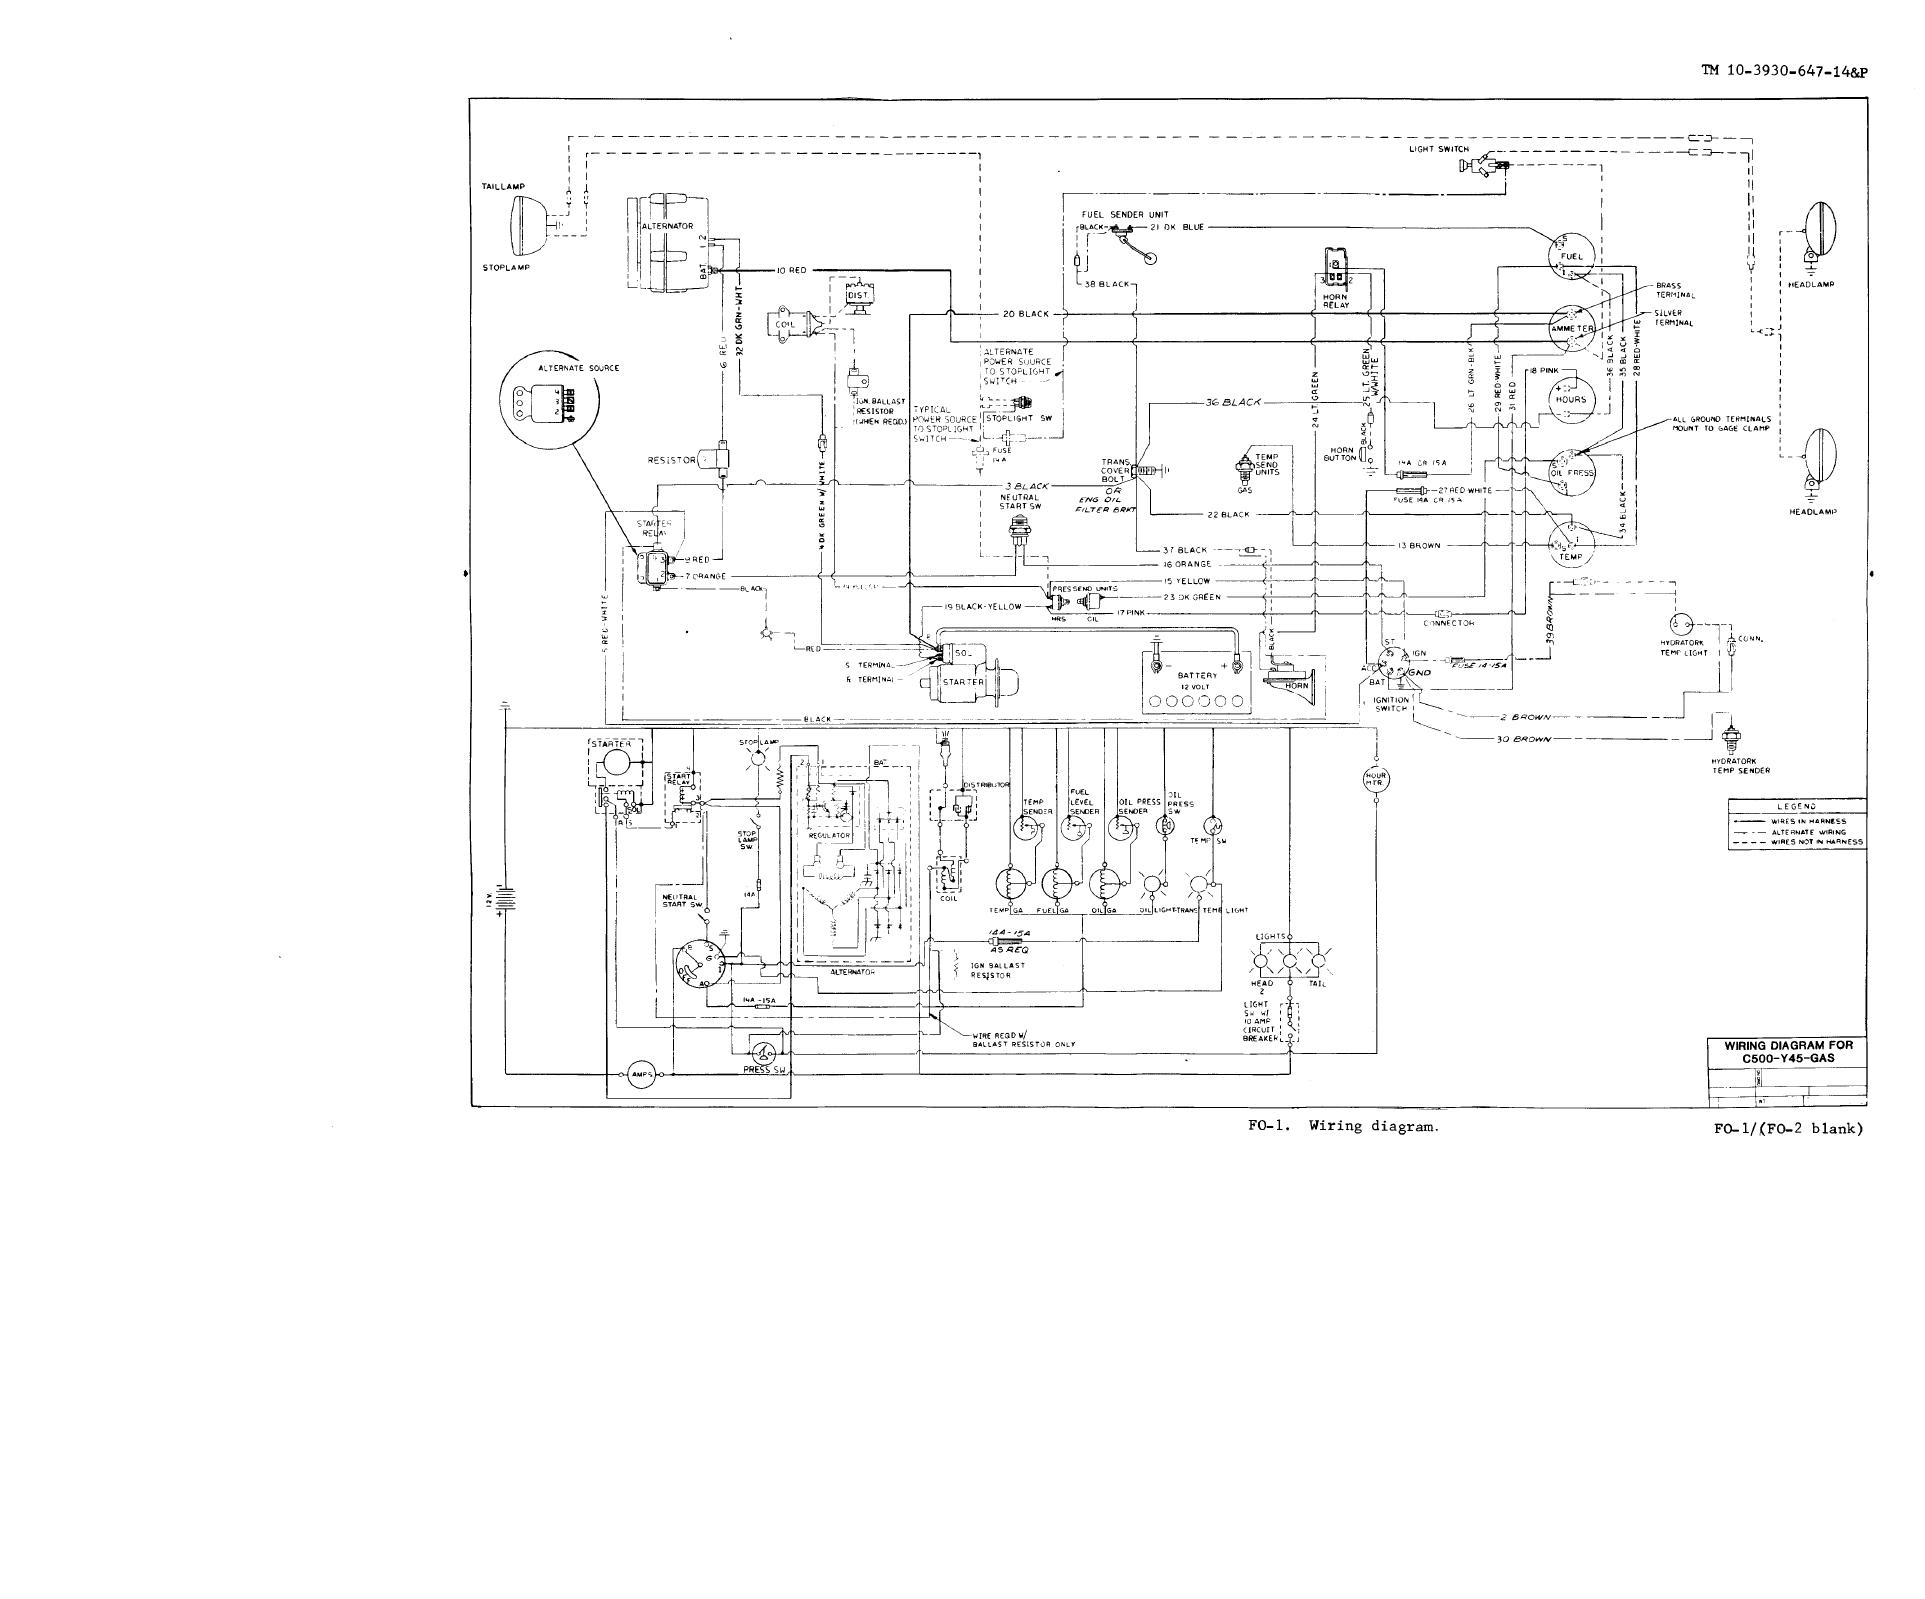 aw_9230] towmotor wiring diagram  arivo lotap pical leona icism mecad lious verr meric scoba ...